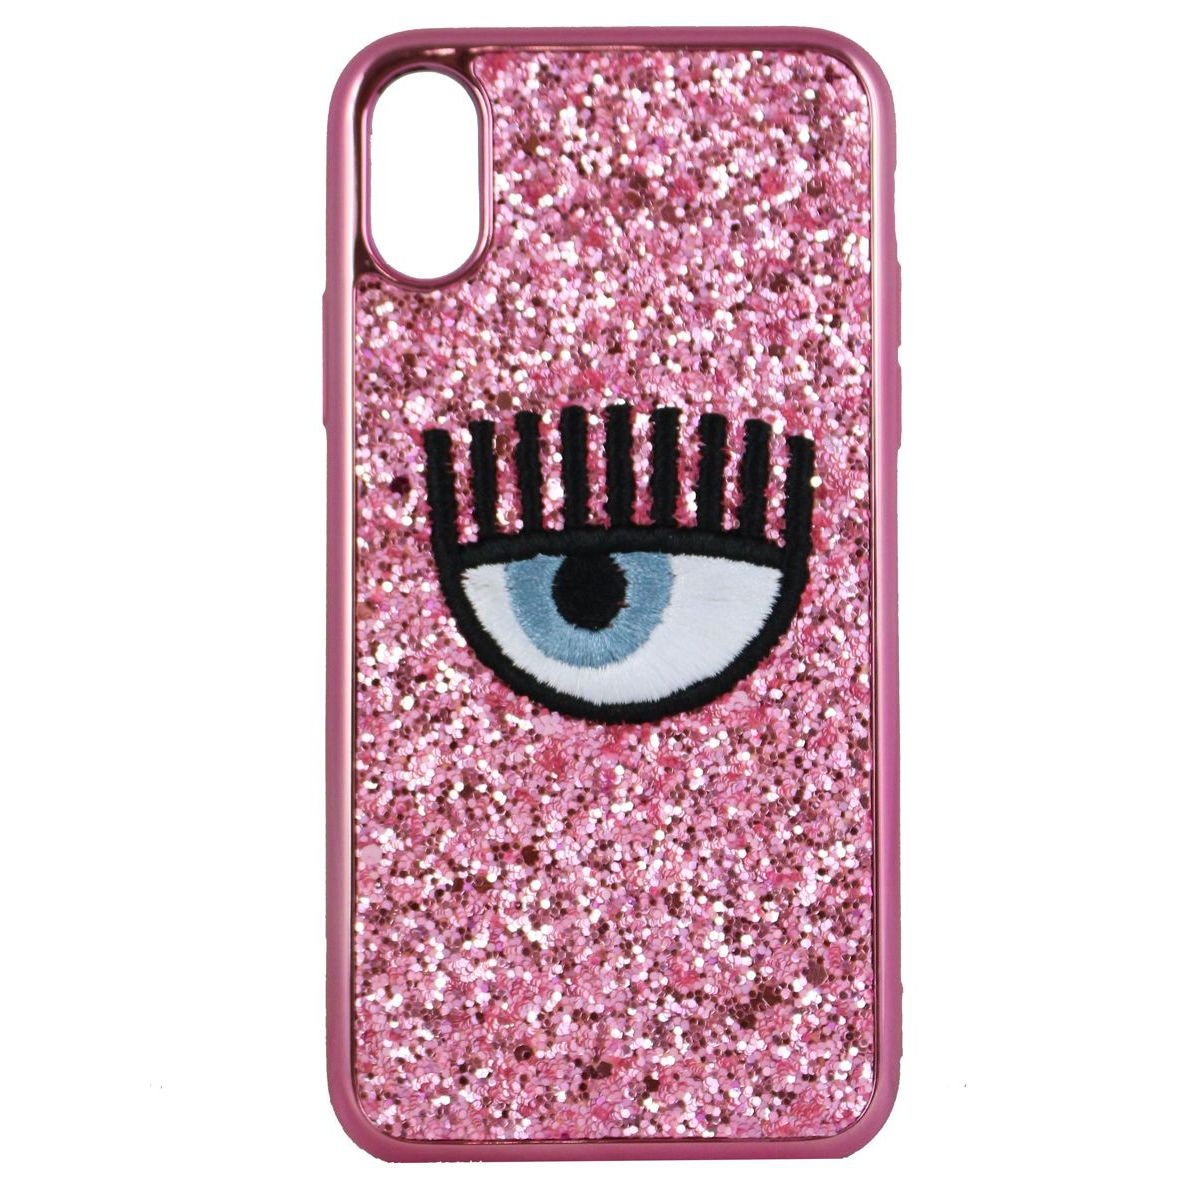 Cover logo Iphone X Rosa CHIARA FERRAGNI